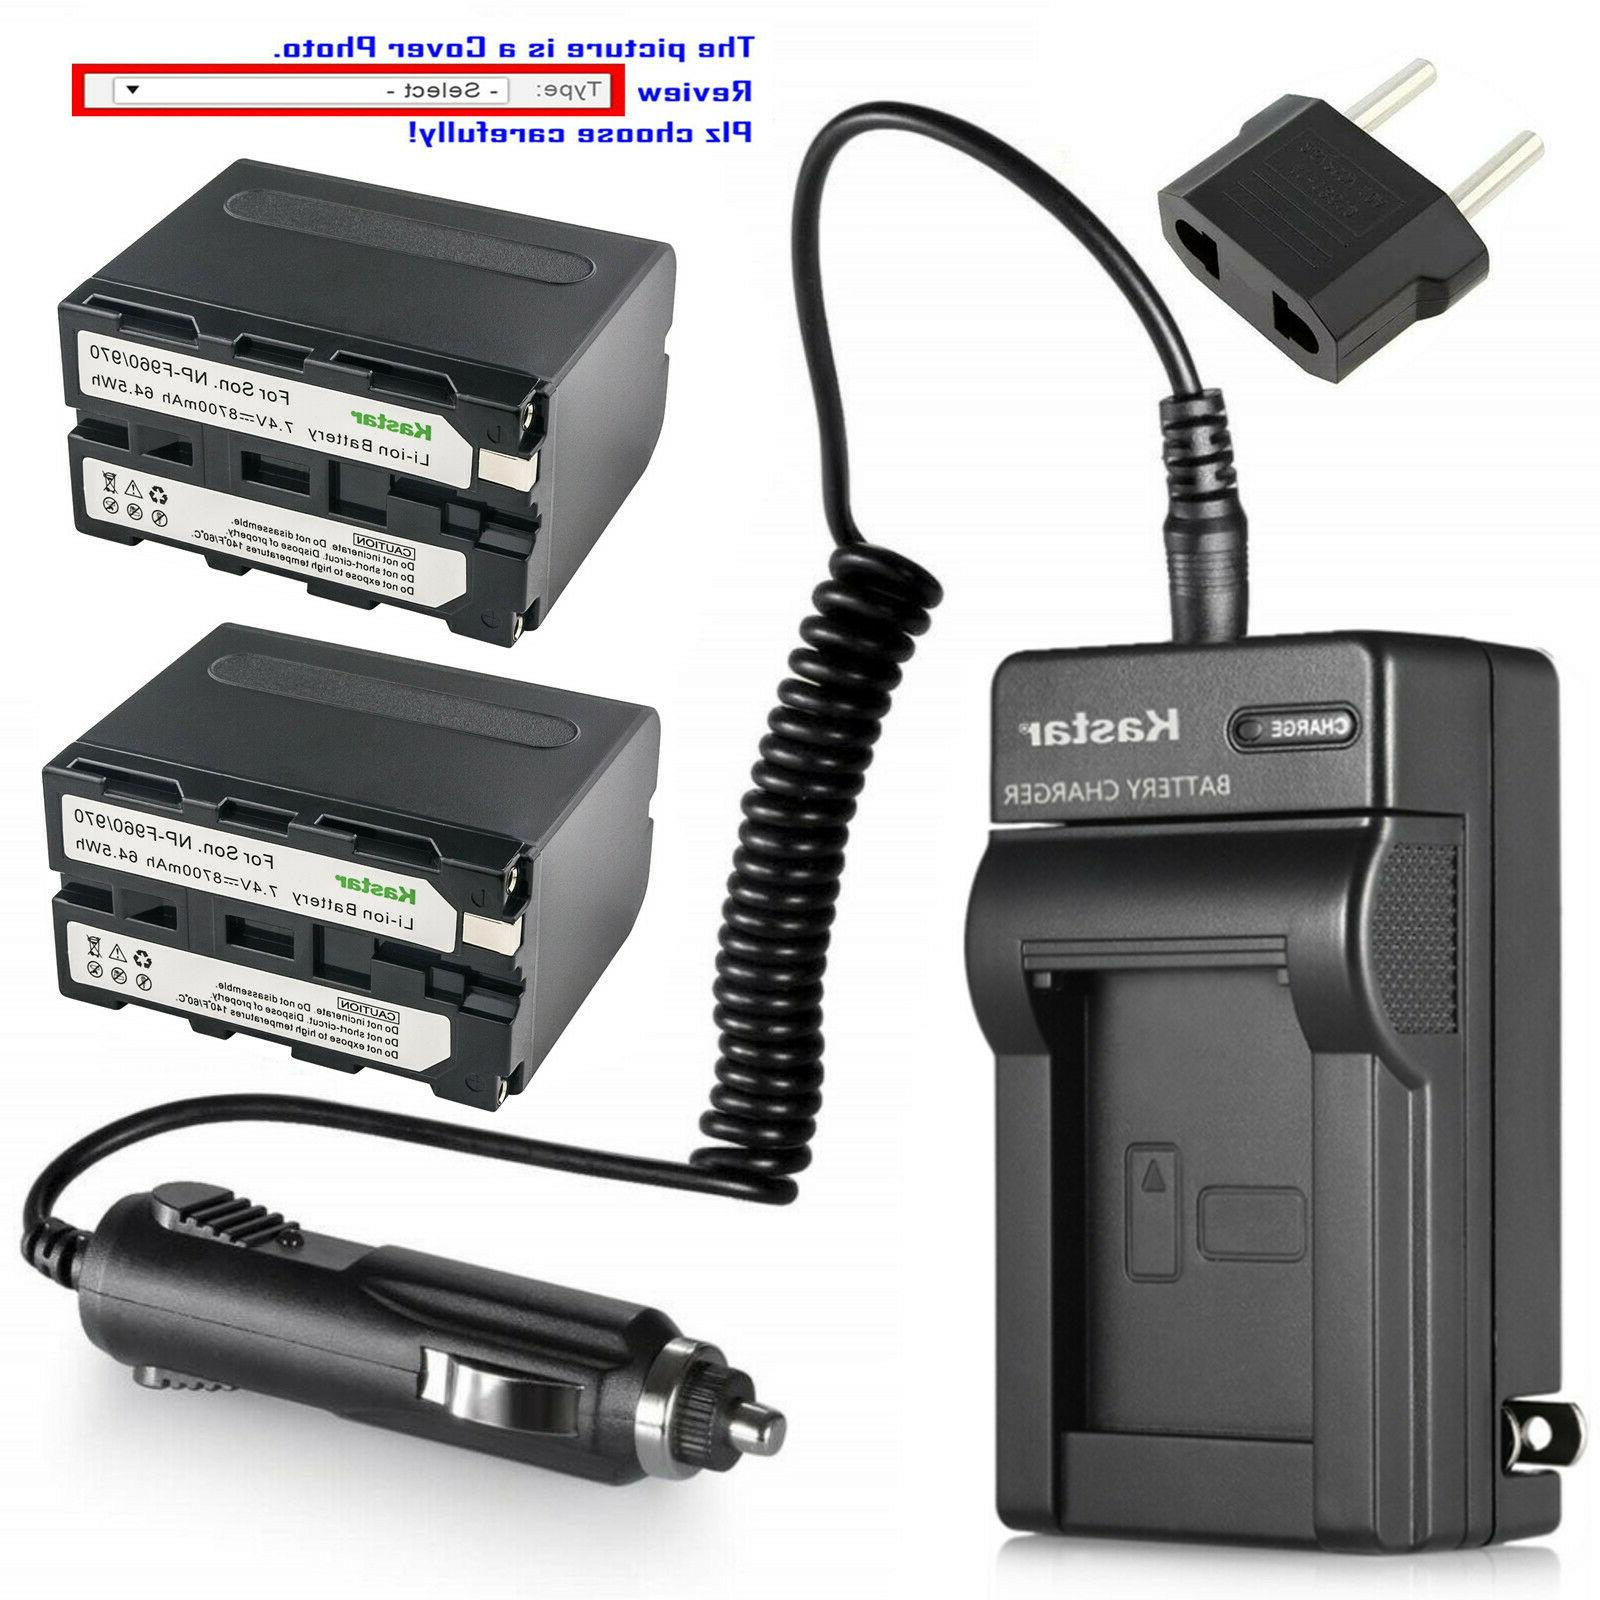 Kastar Battery Charger for Sony NP-F330 NP-F550 NP-F750 NP-F